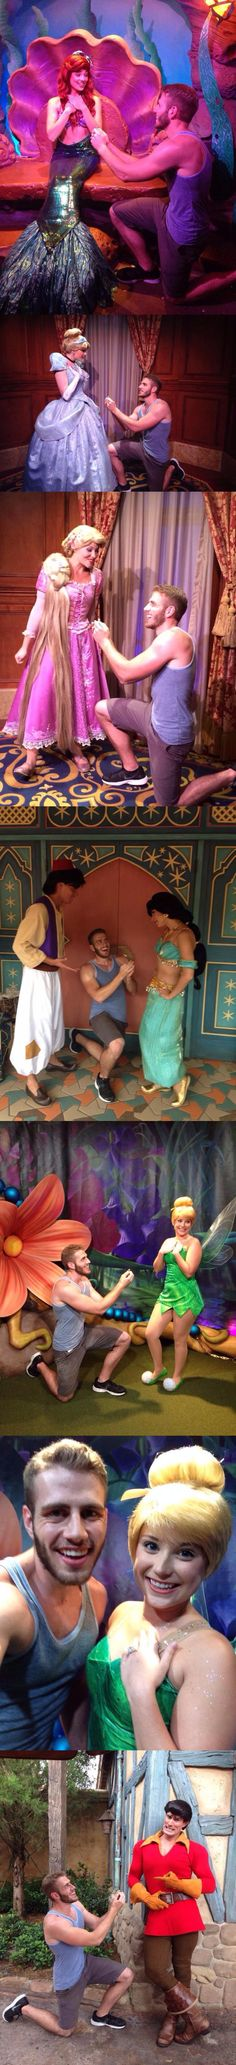 A Guy Proposed To Disney Princesses